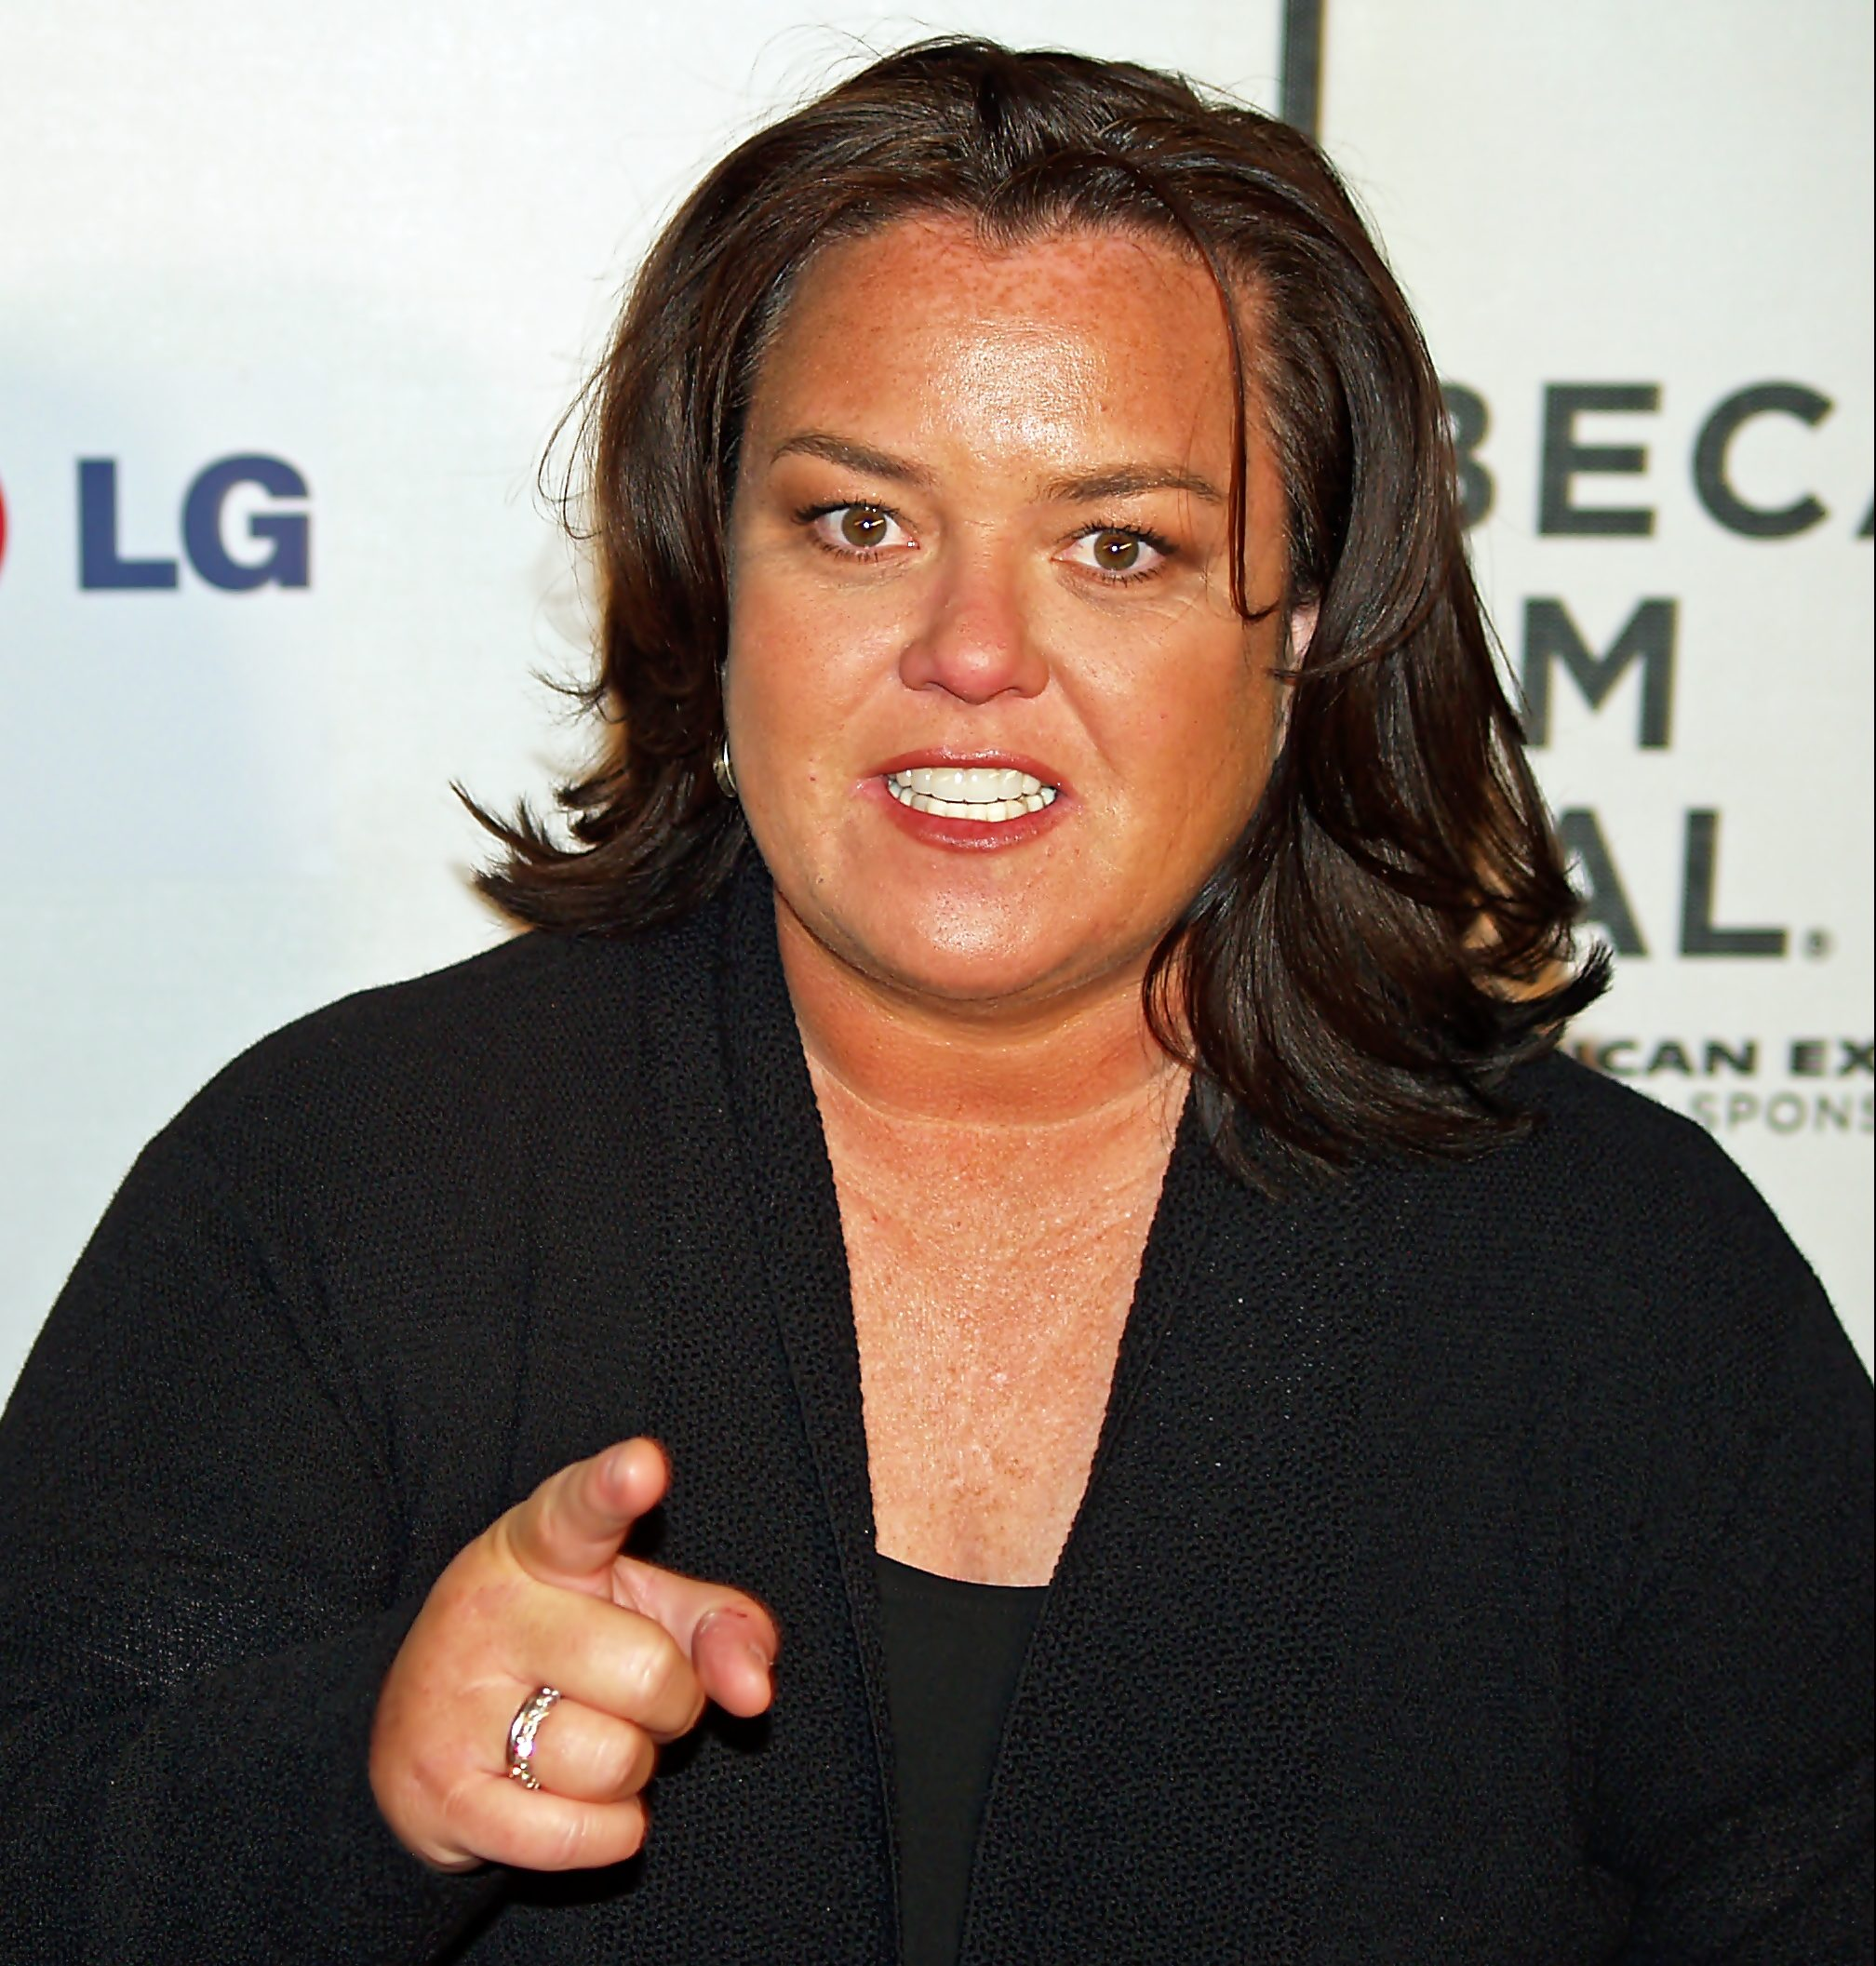 Rosie ODonnell by David Shankbone e1581686157671 20 Celebrities With Surprising Hobbies